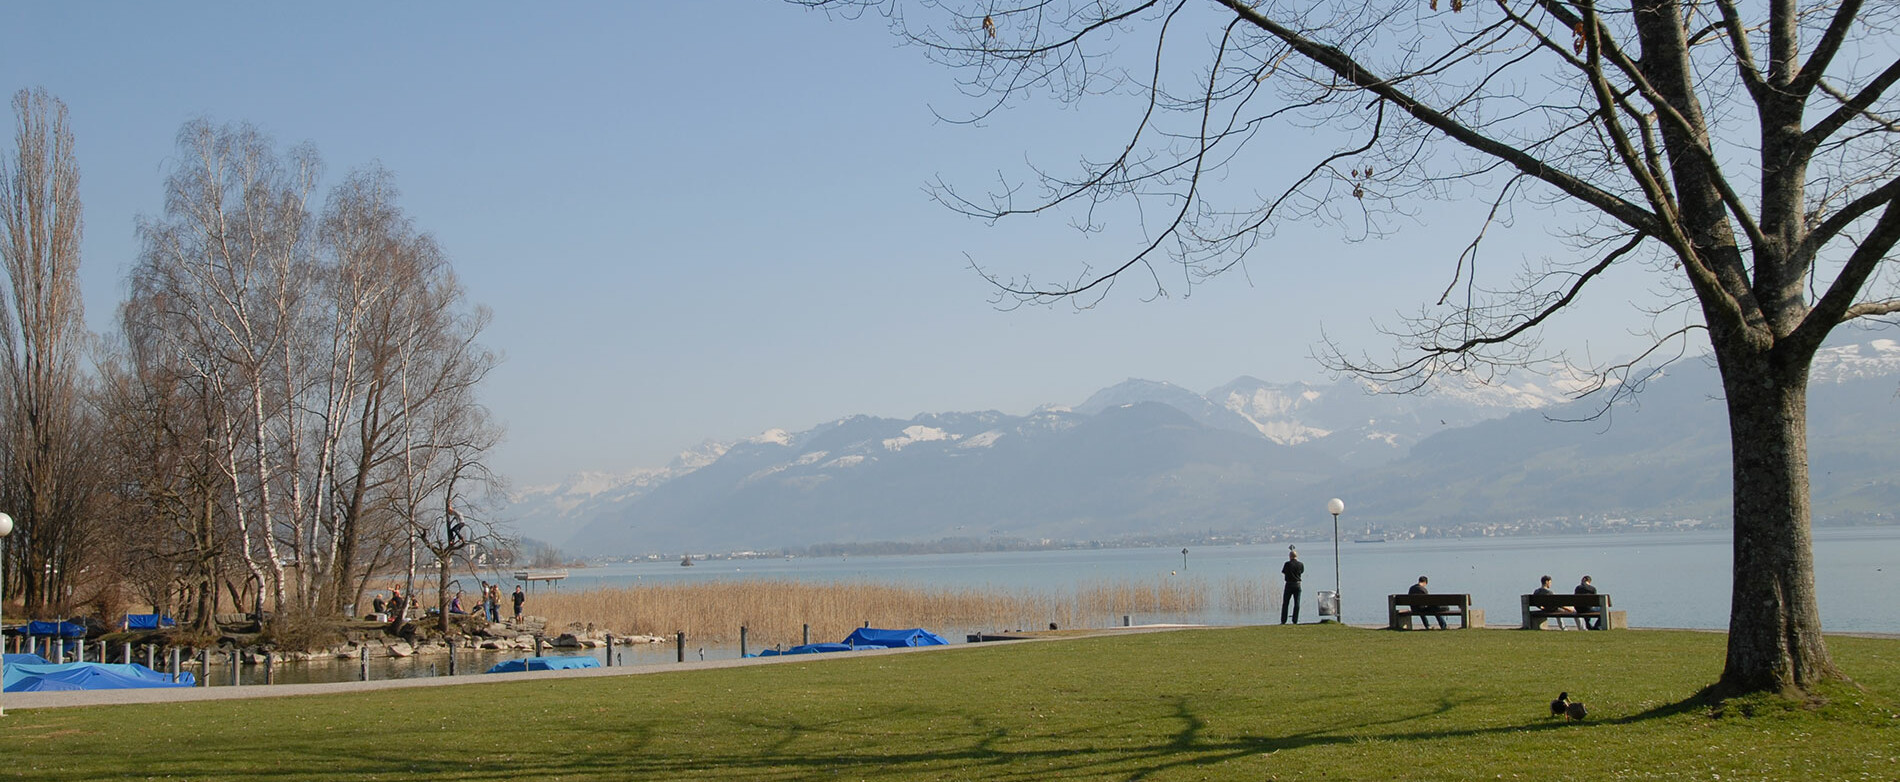 [Translate to English:] Der Campus Rapperswil liegt direkt am Zürichsee